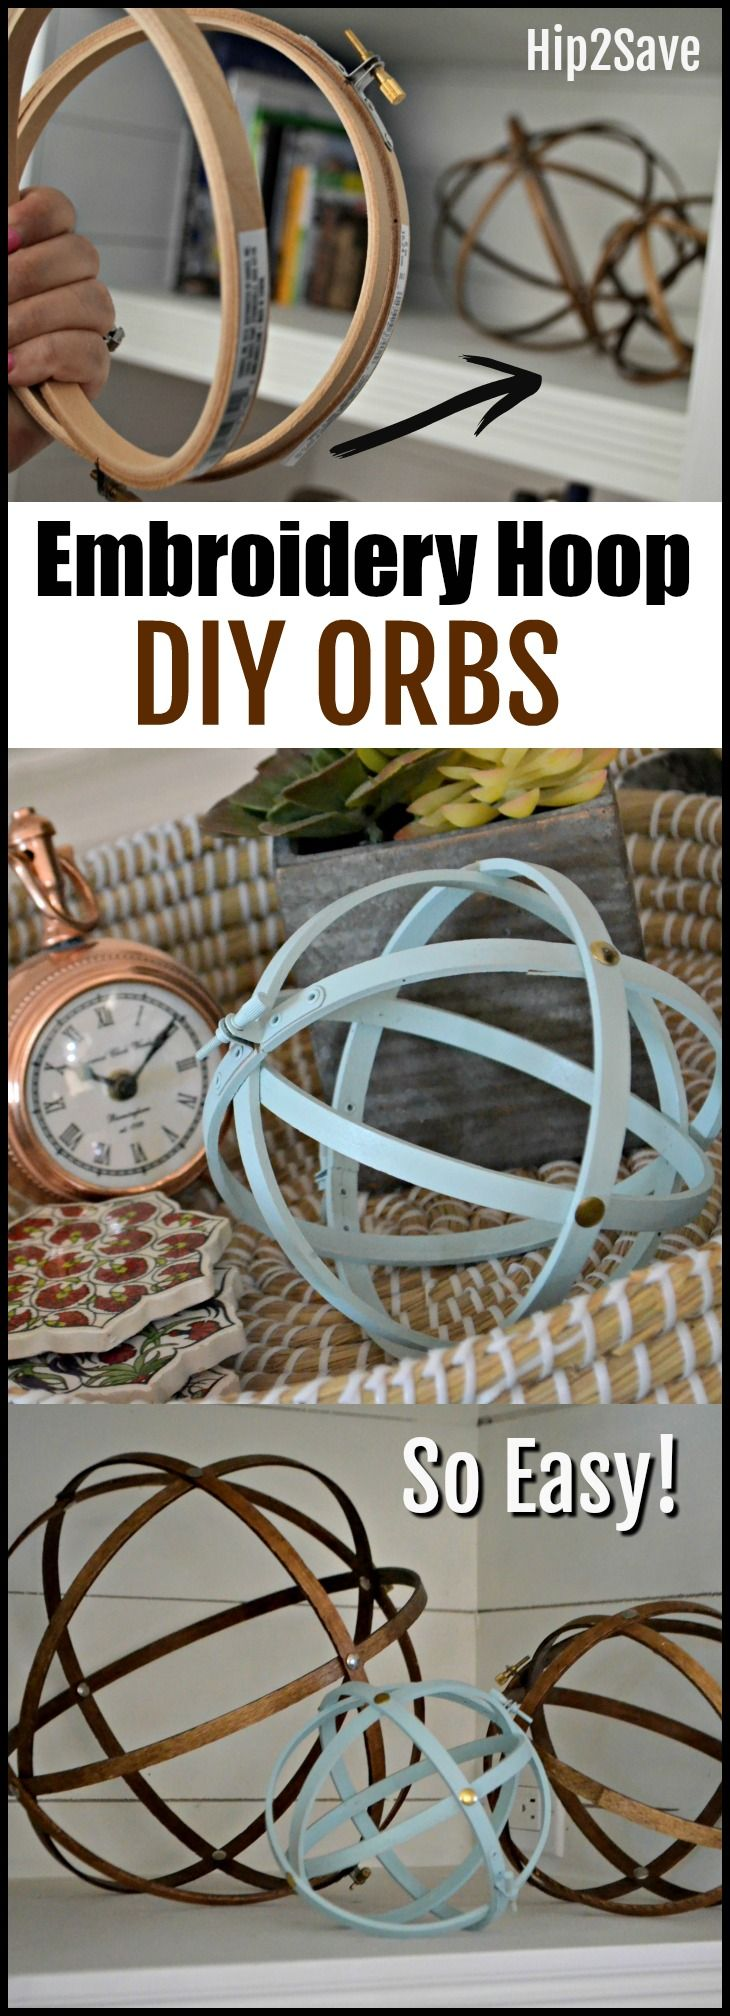 You won't believe how easy it is to make these inexpensive farmhouse style decorative orbs for your home!